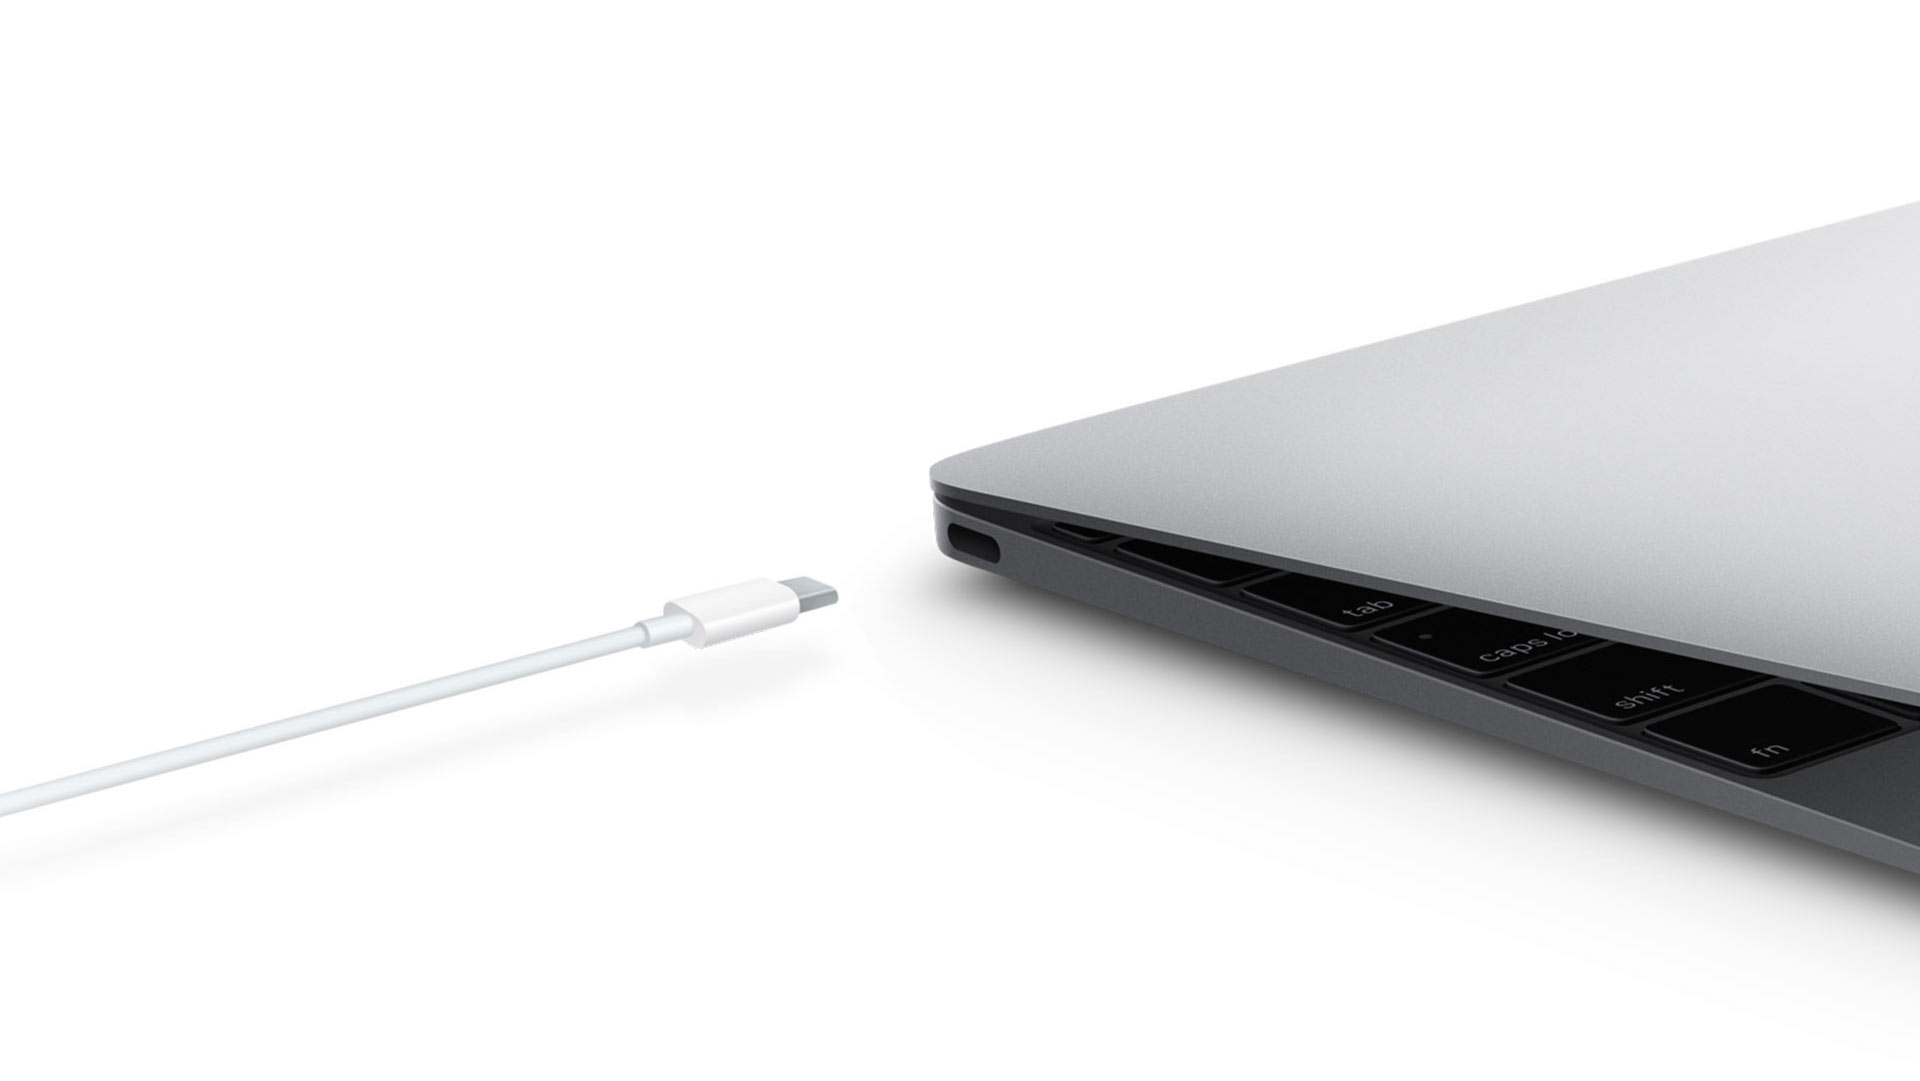 apple macbook usb